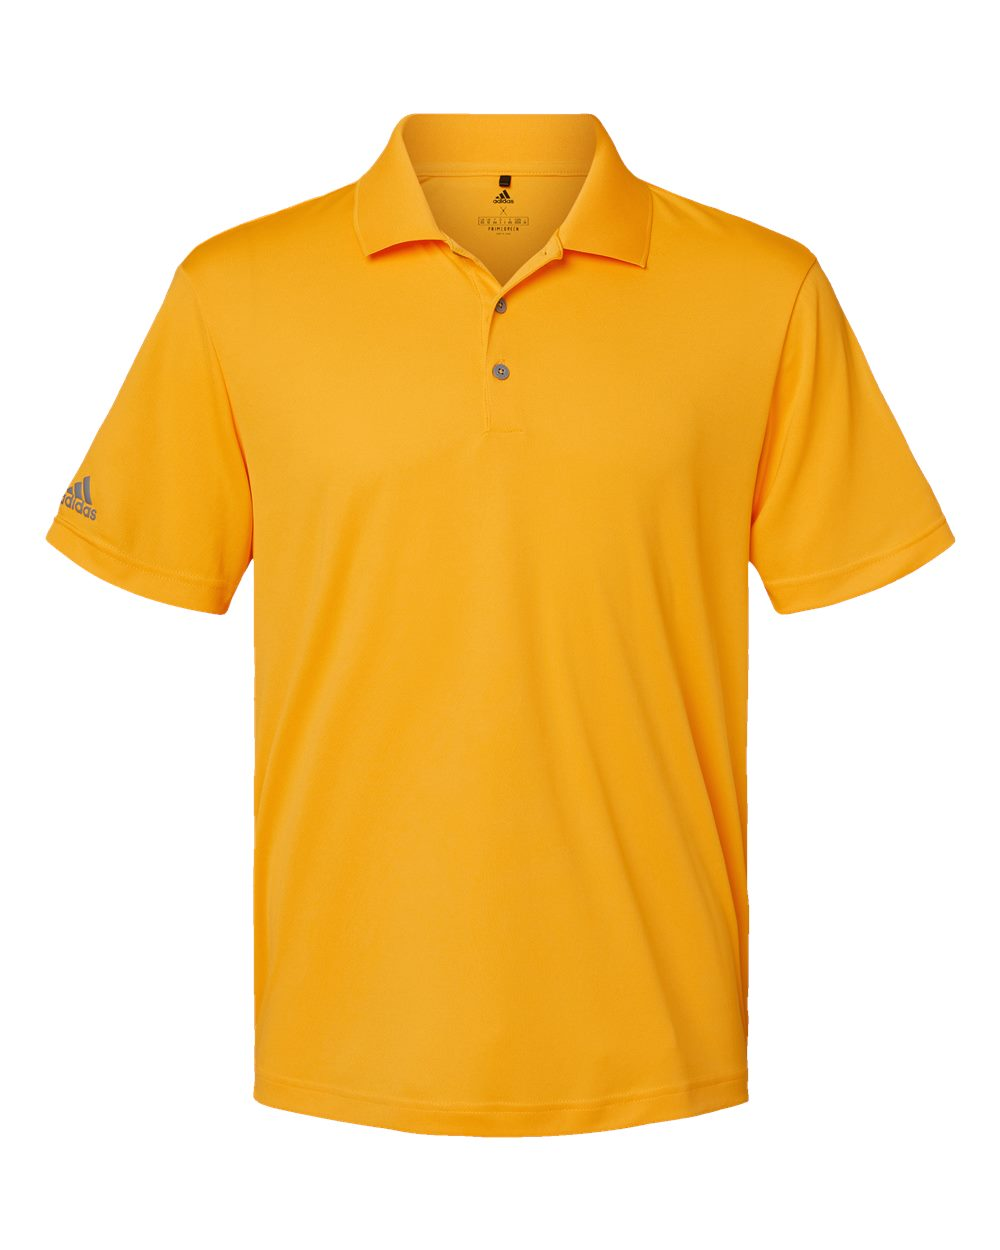 Adidas-Performance-Sport-Shirt-Polo-Button-A230-up-to-4XL miniature 9